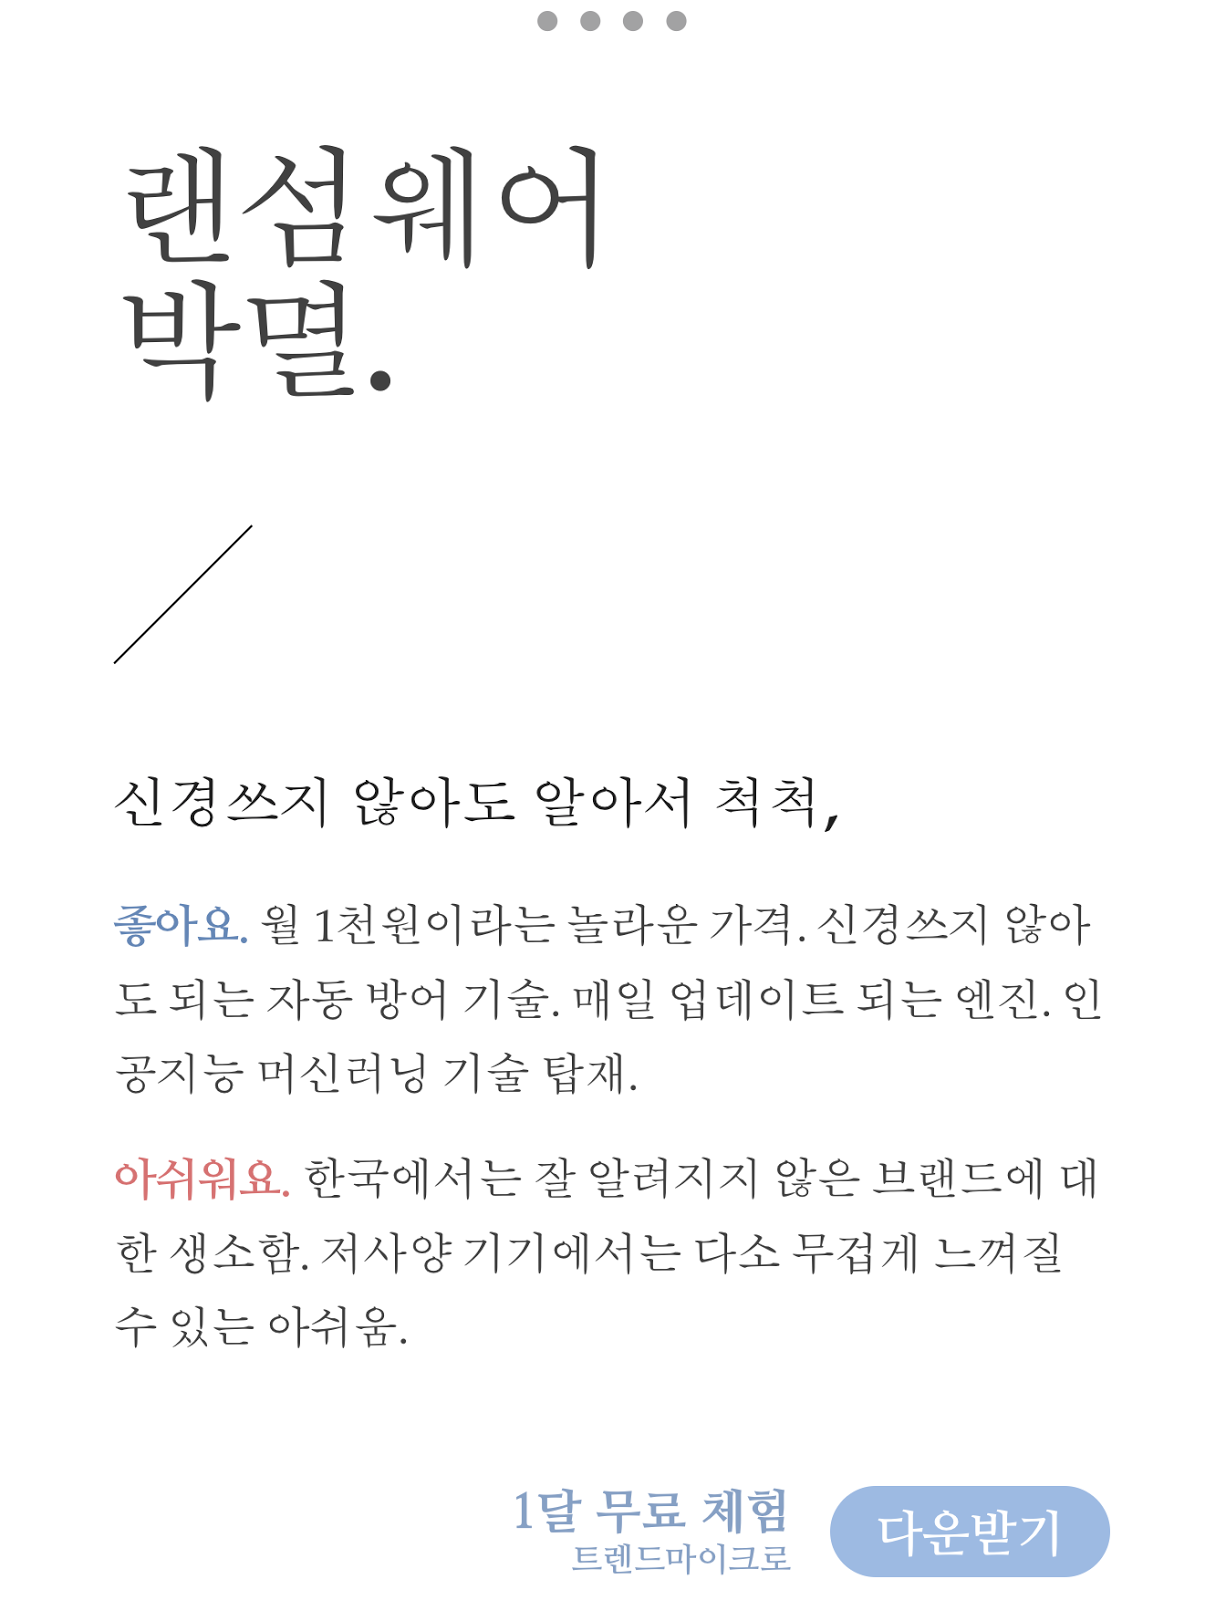 http://safetrend.kr/download_trial.php